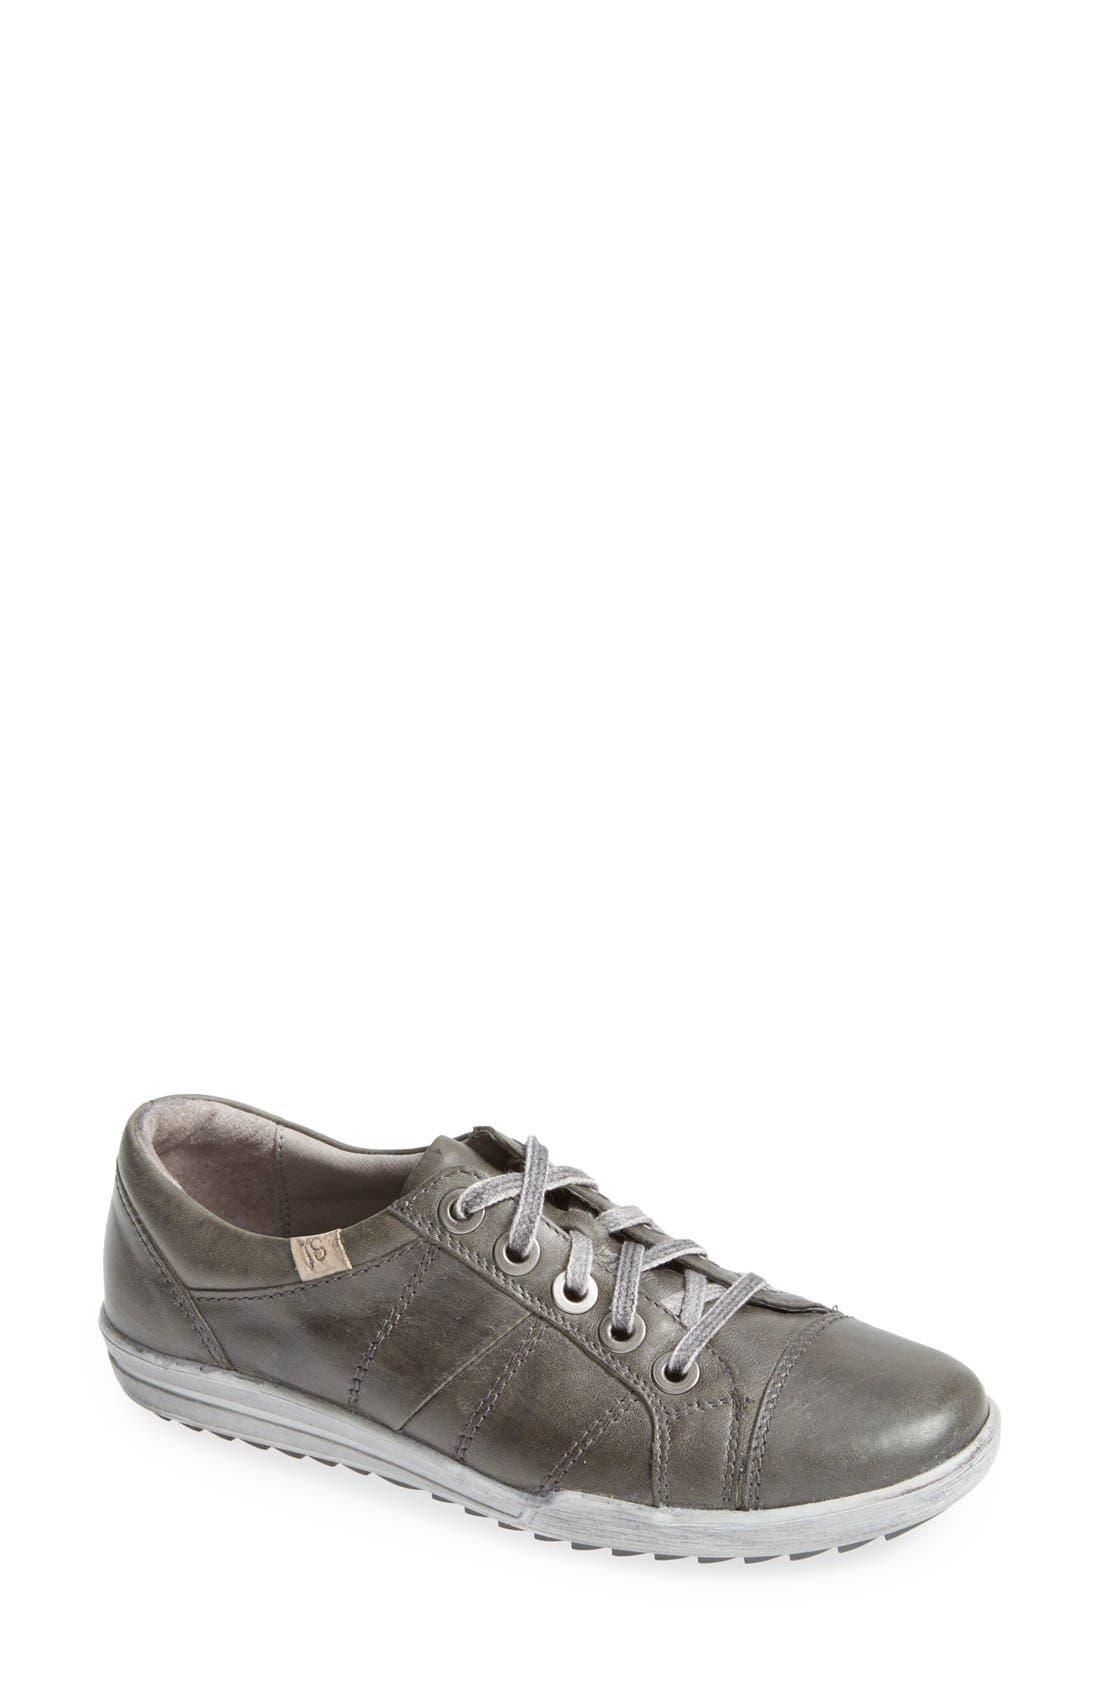 'Dany 05' Leather Sneaker,                             Main thumbnail 2, color,